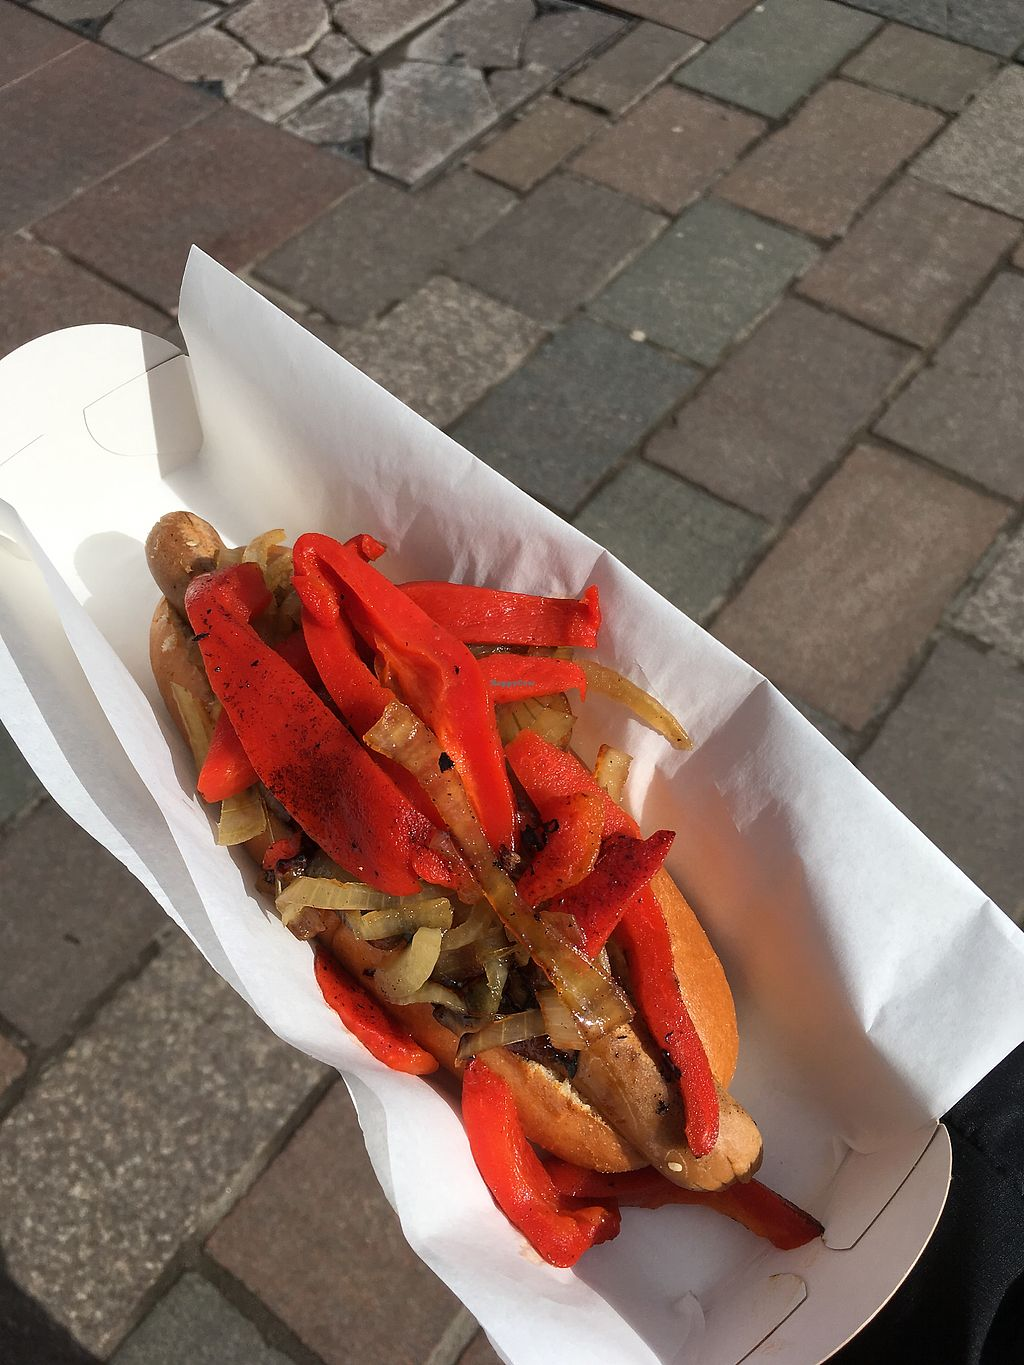 """Photo of The Glasvegan  by <a href=""""/members/profile/RhonaM"""">RhonaM</a> <br/>""""Not dog"""" with sweet fried onion & roasted red peppers <br/> March 30, 2018  - <a href='/contact/abuse/image/114012/378490'>Report</a>"""